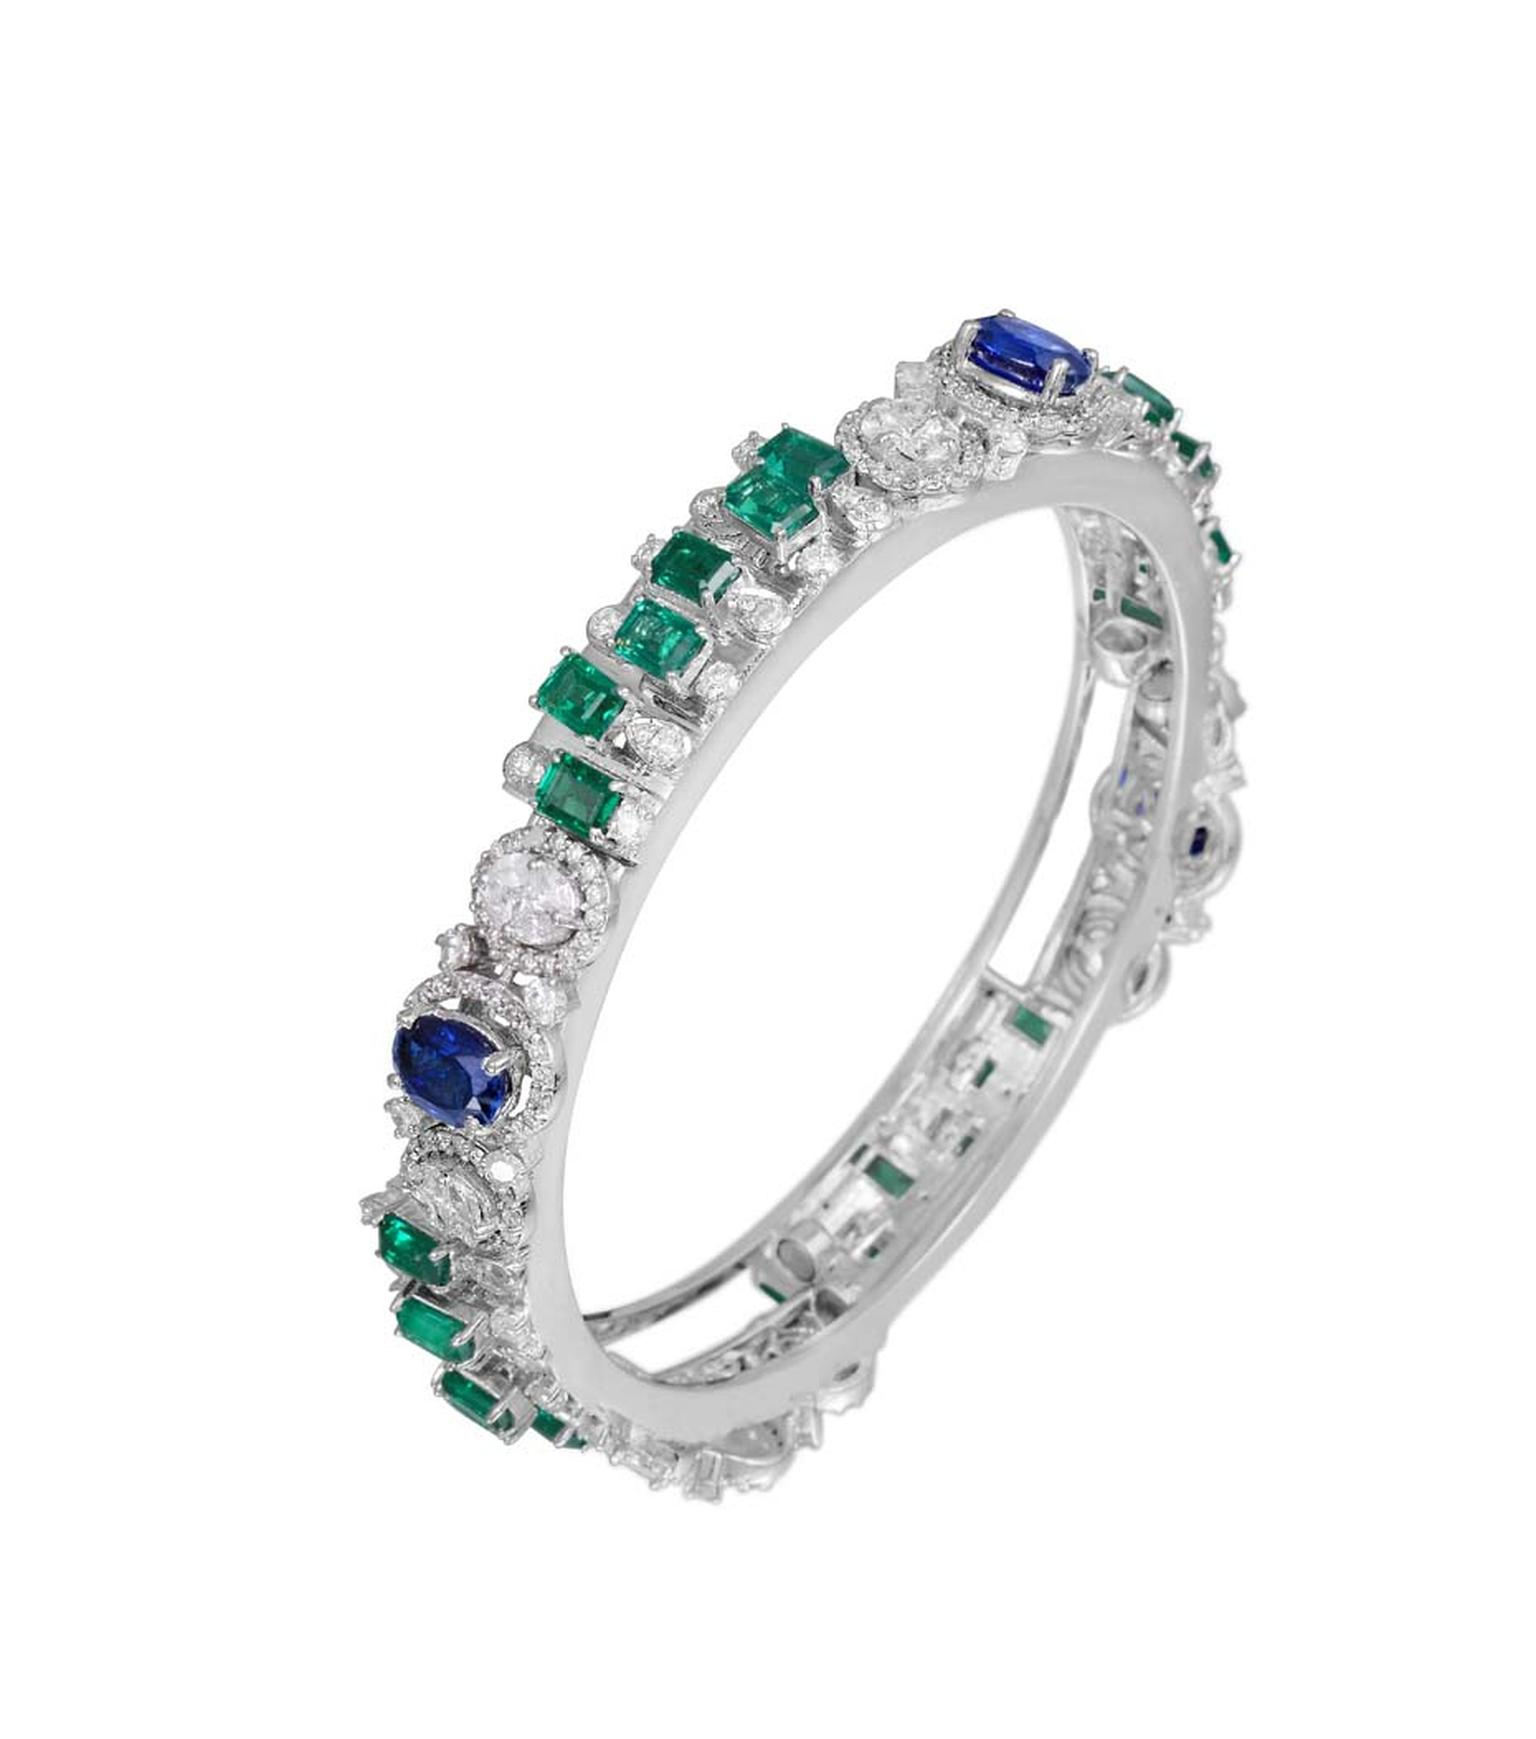 Varuna D Jani Vow collection bangle featuring diamonds, sapphires and emeralds